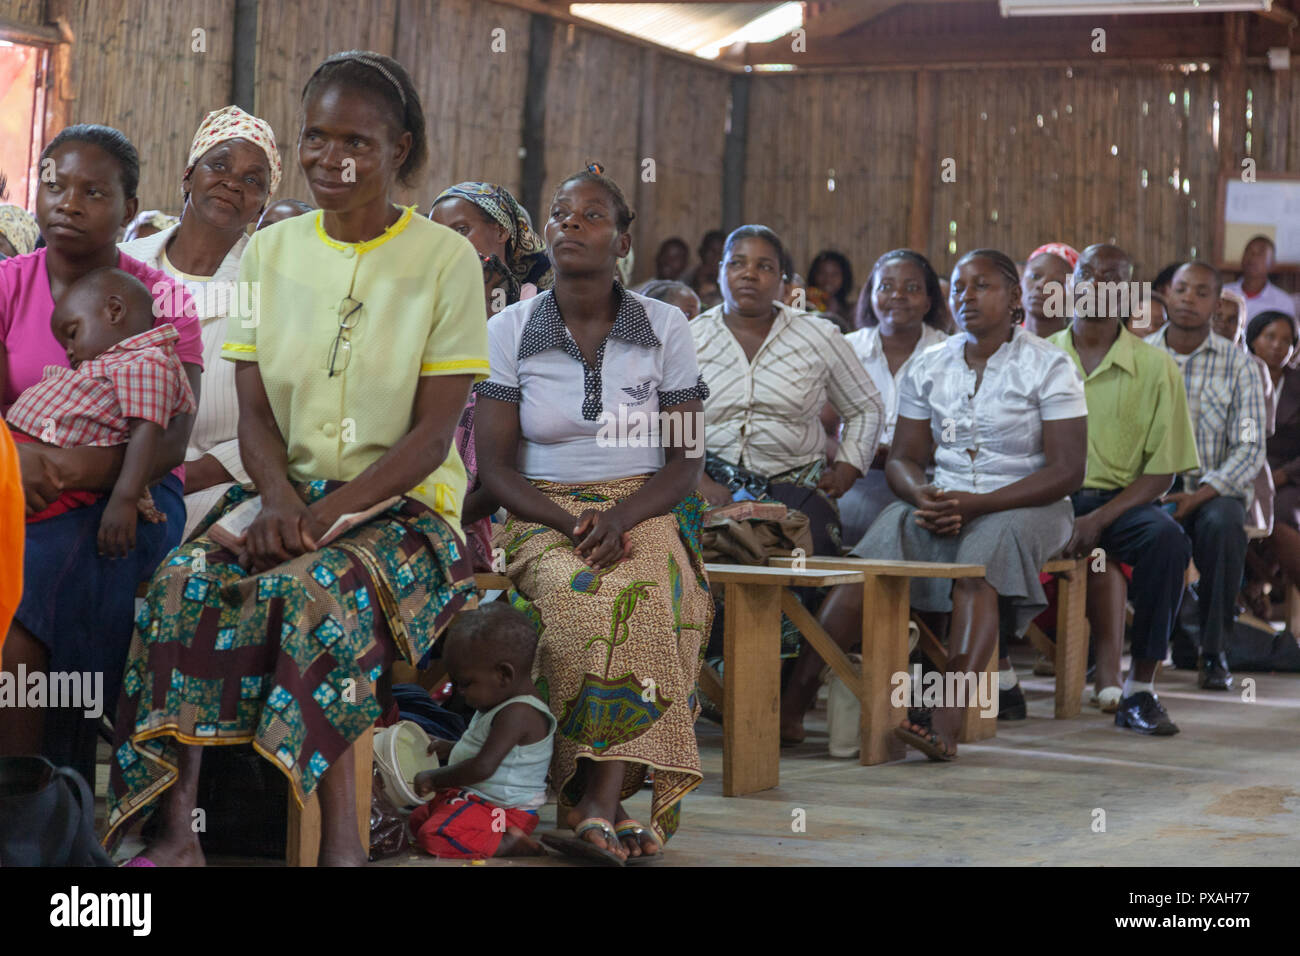 A series of images from Mozambique assisting building a church in Xai Xai - Stock Image